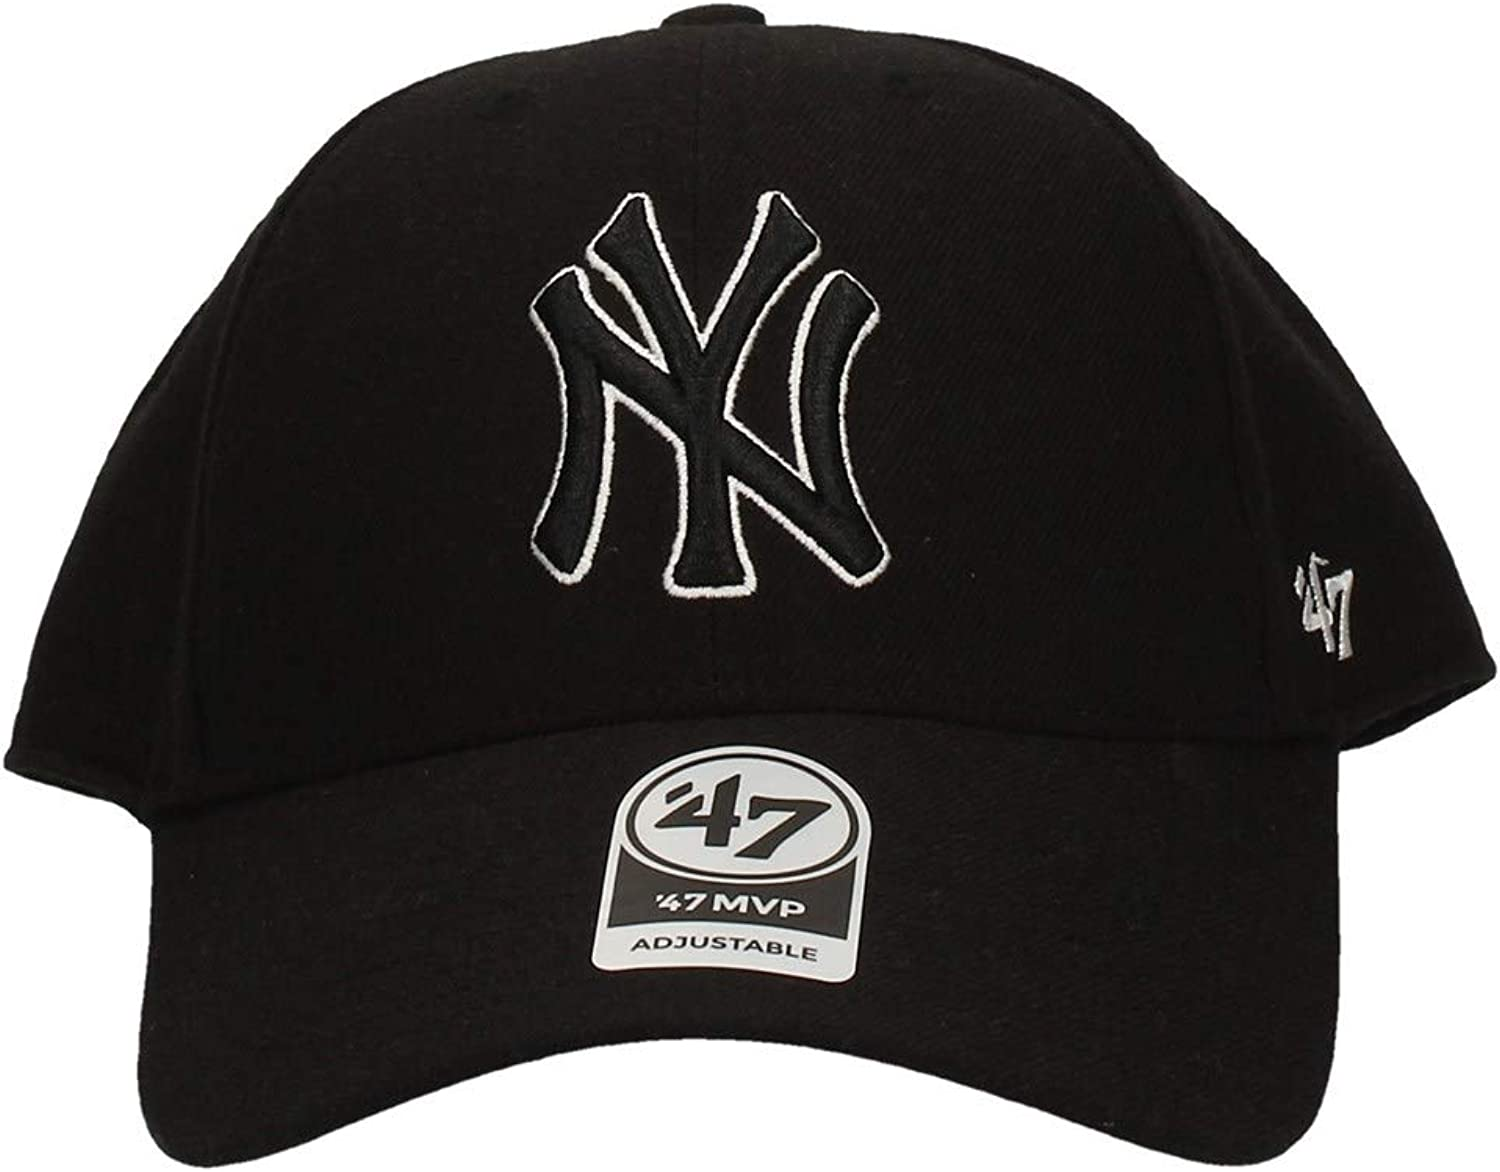 47 New York Yankees - Gorra Unisex Adulto: Amazon.es: Ropa y ...